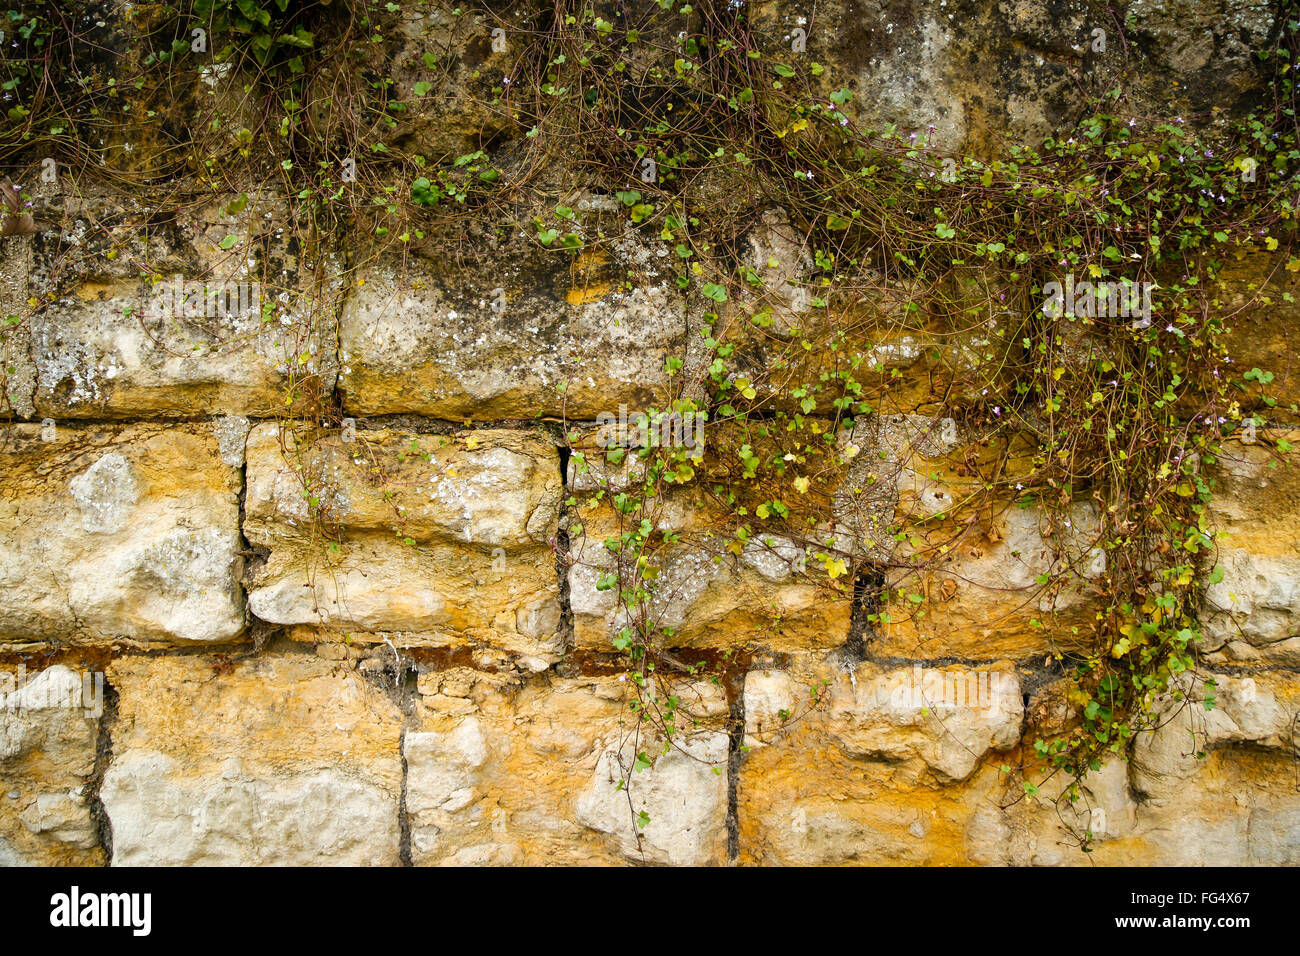 An old, weathered, aged, Stone, brick, rock wall with texture and ...